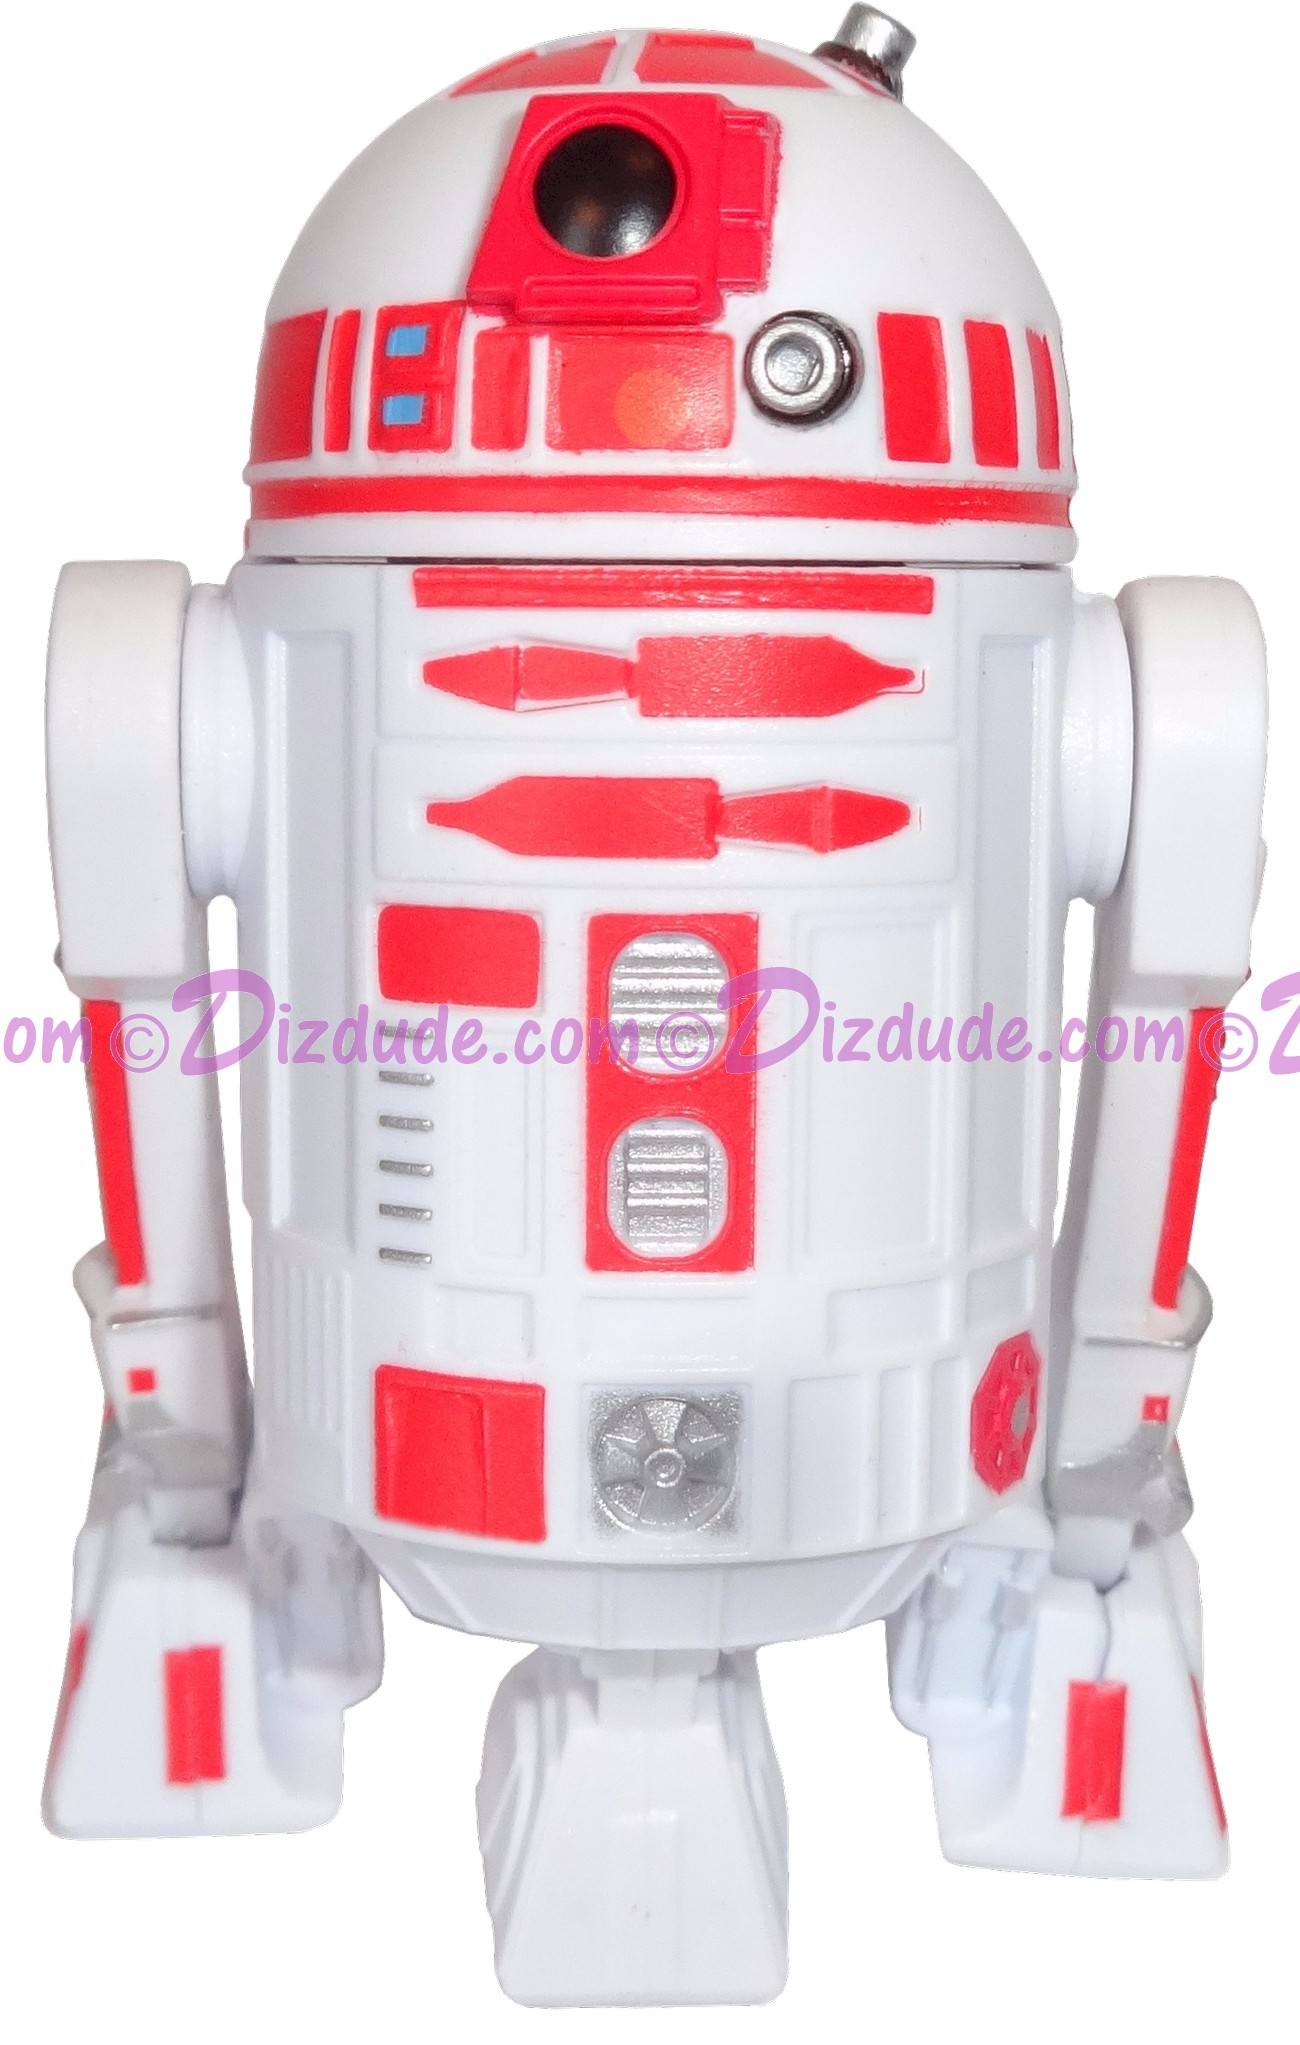 R2-D2 White & Red Astromech Droid ~ Pick-A-Hat ~ Series 2 from Disney Star Wars Build-A-Droid Factory © Dizdude.com